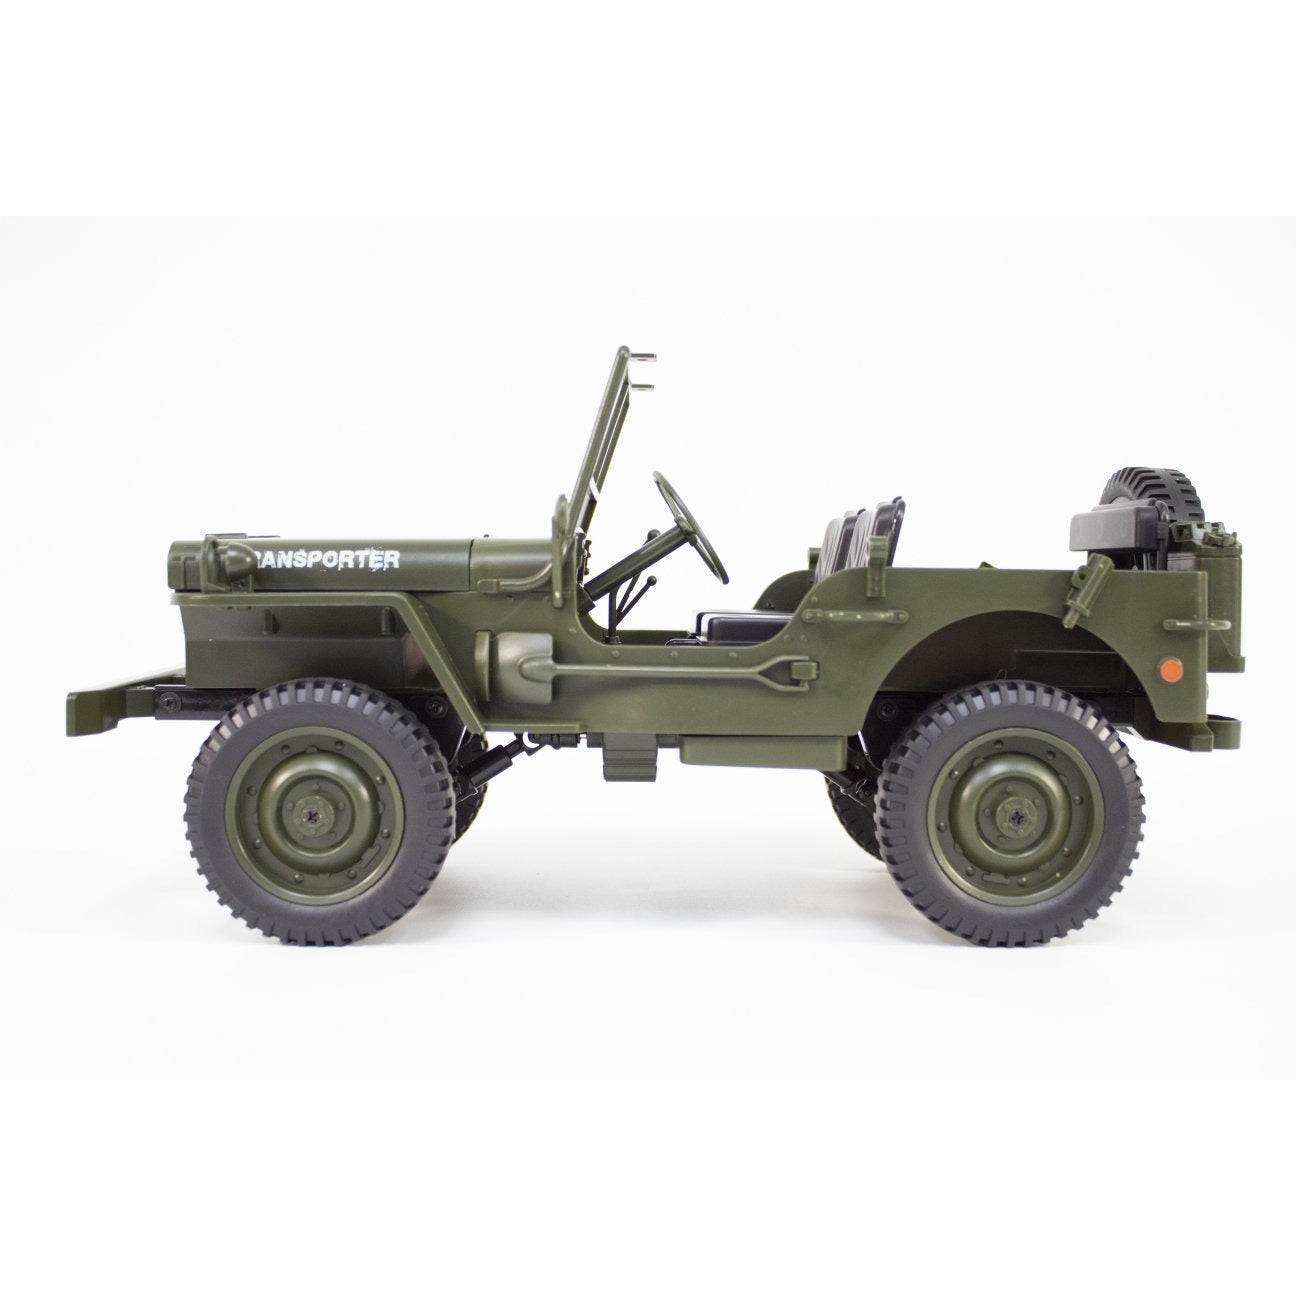 Willys 4x4 1:10th Scale RTR 2.4GHz RC Truck